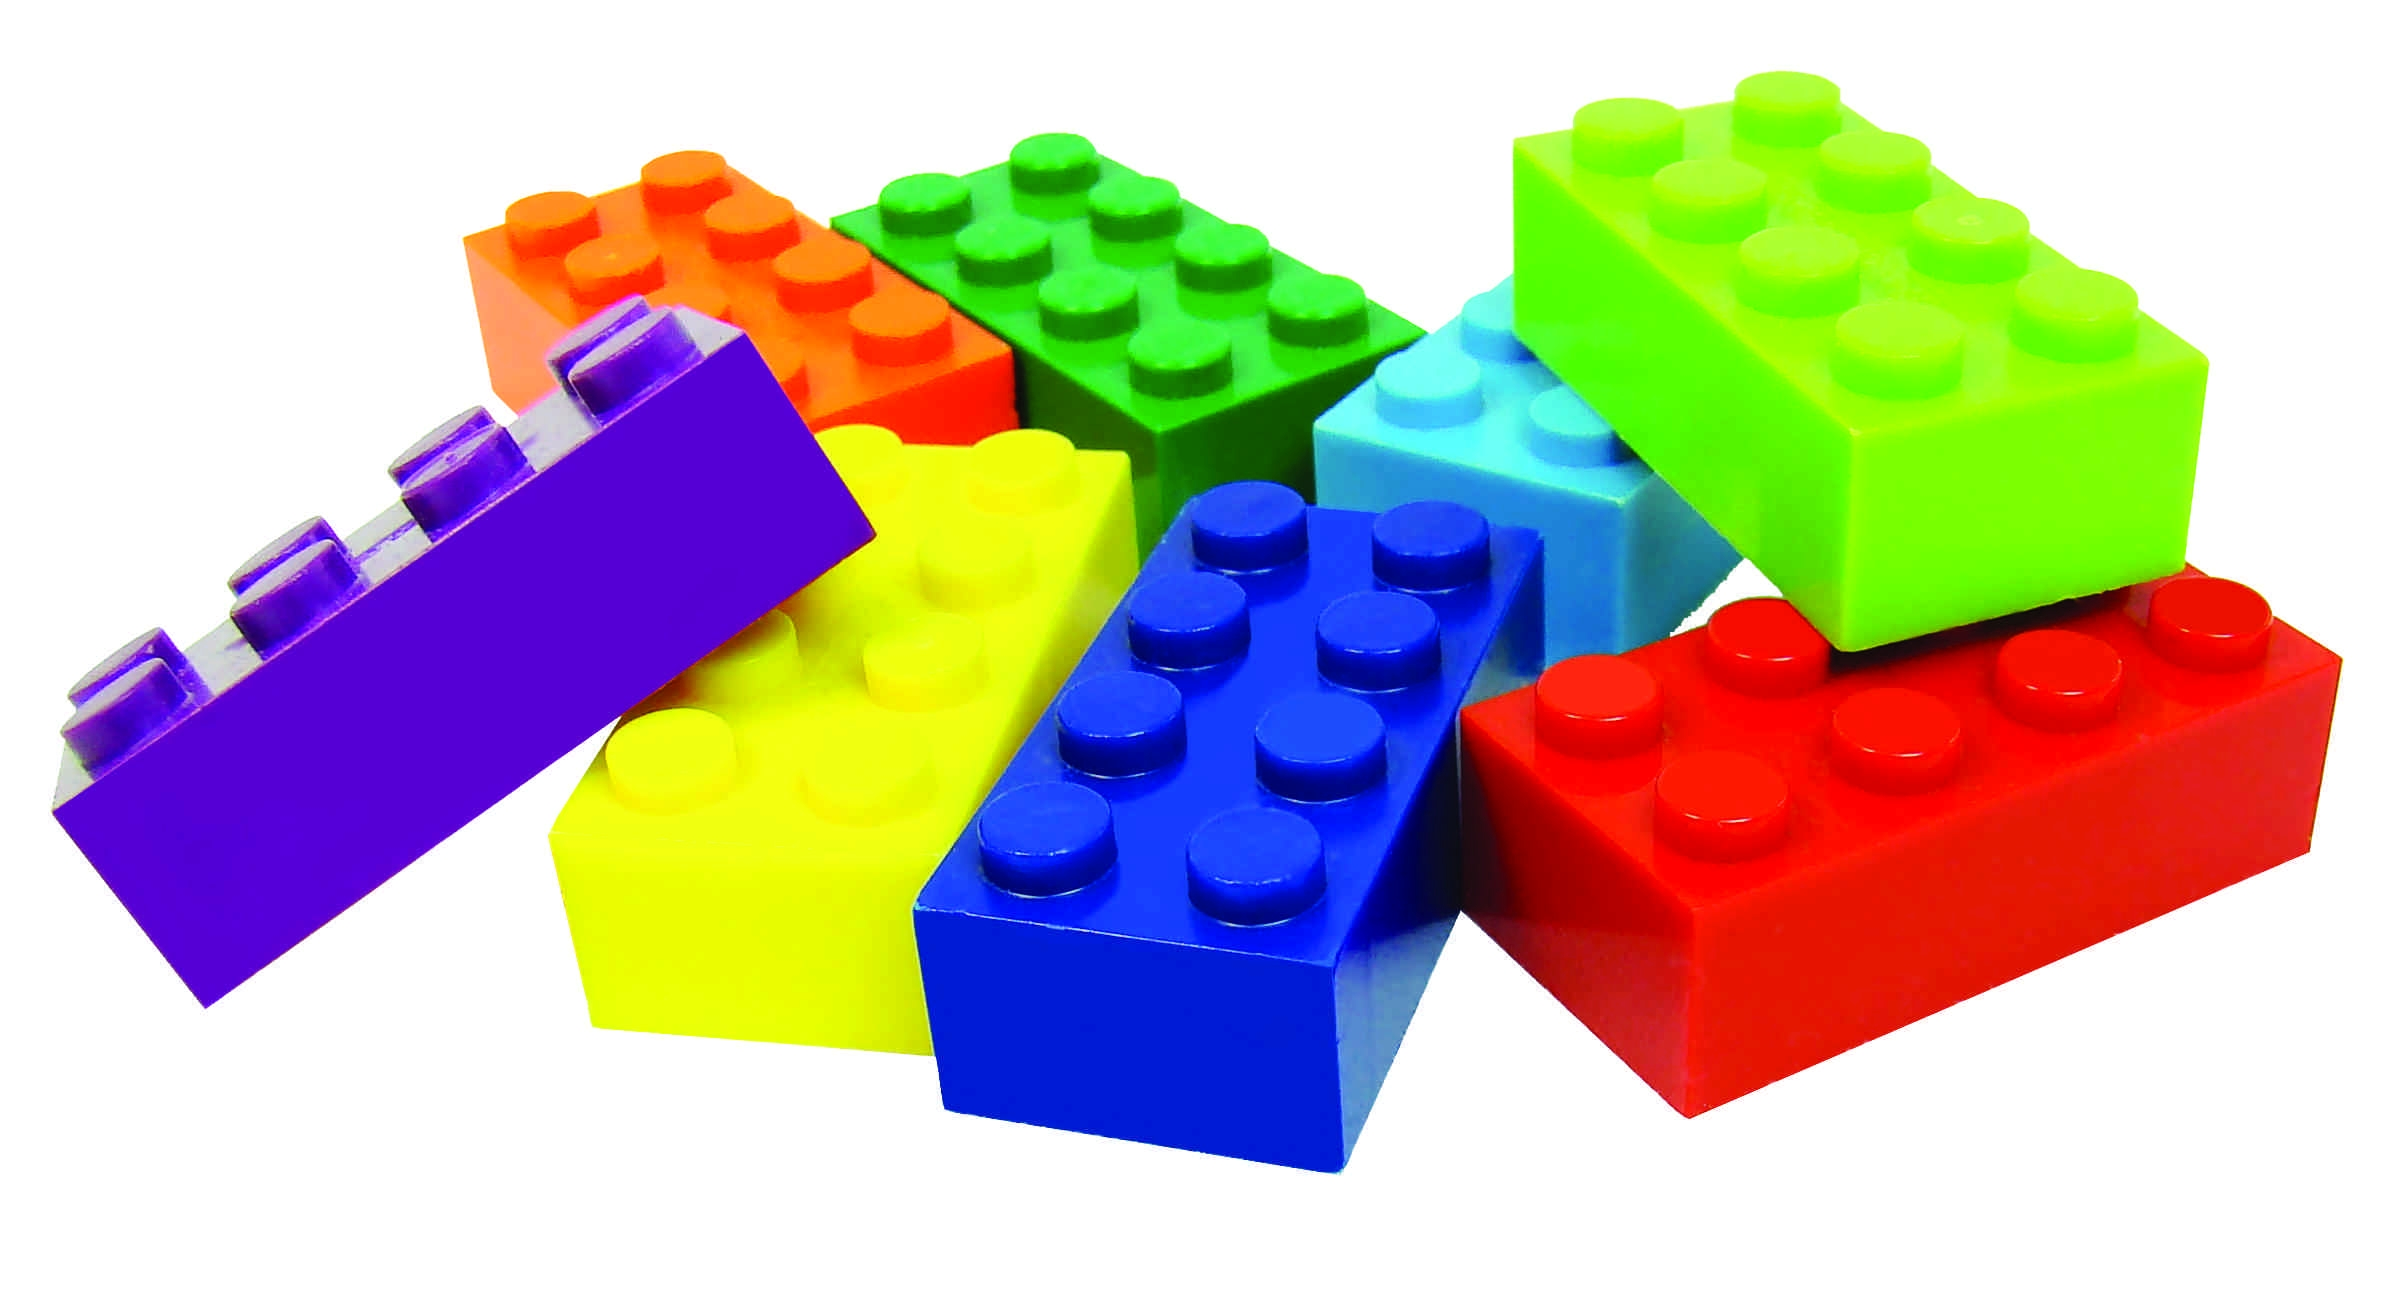 Lego clipart. New design digital collection